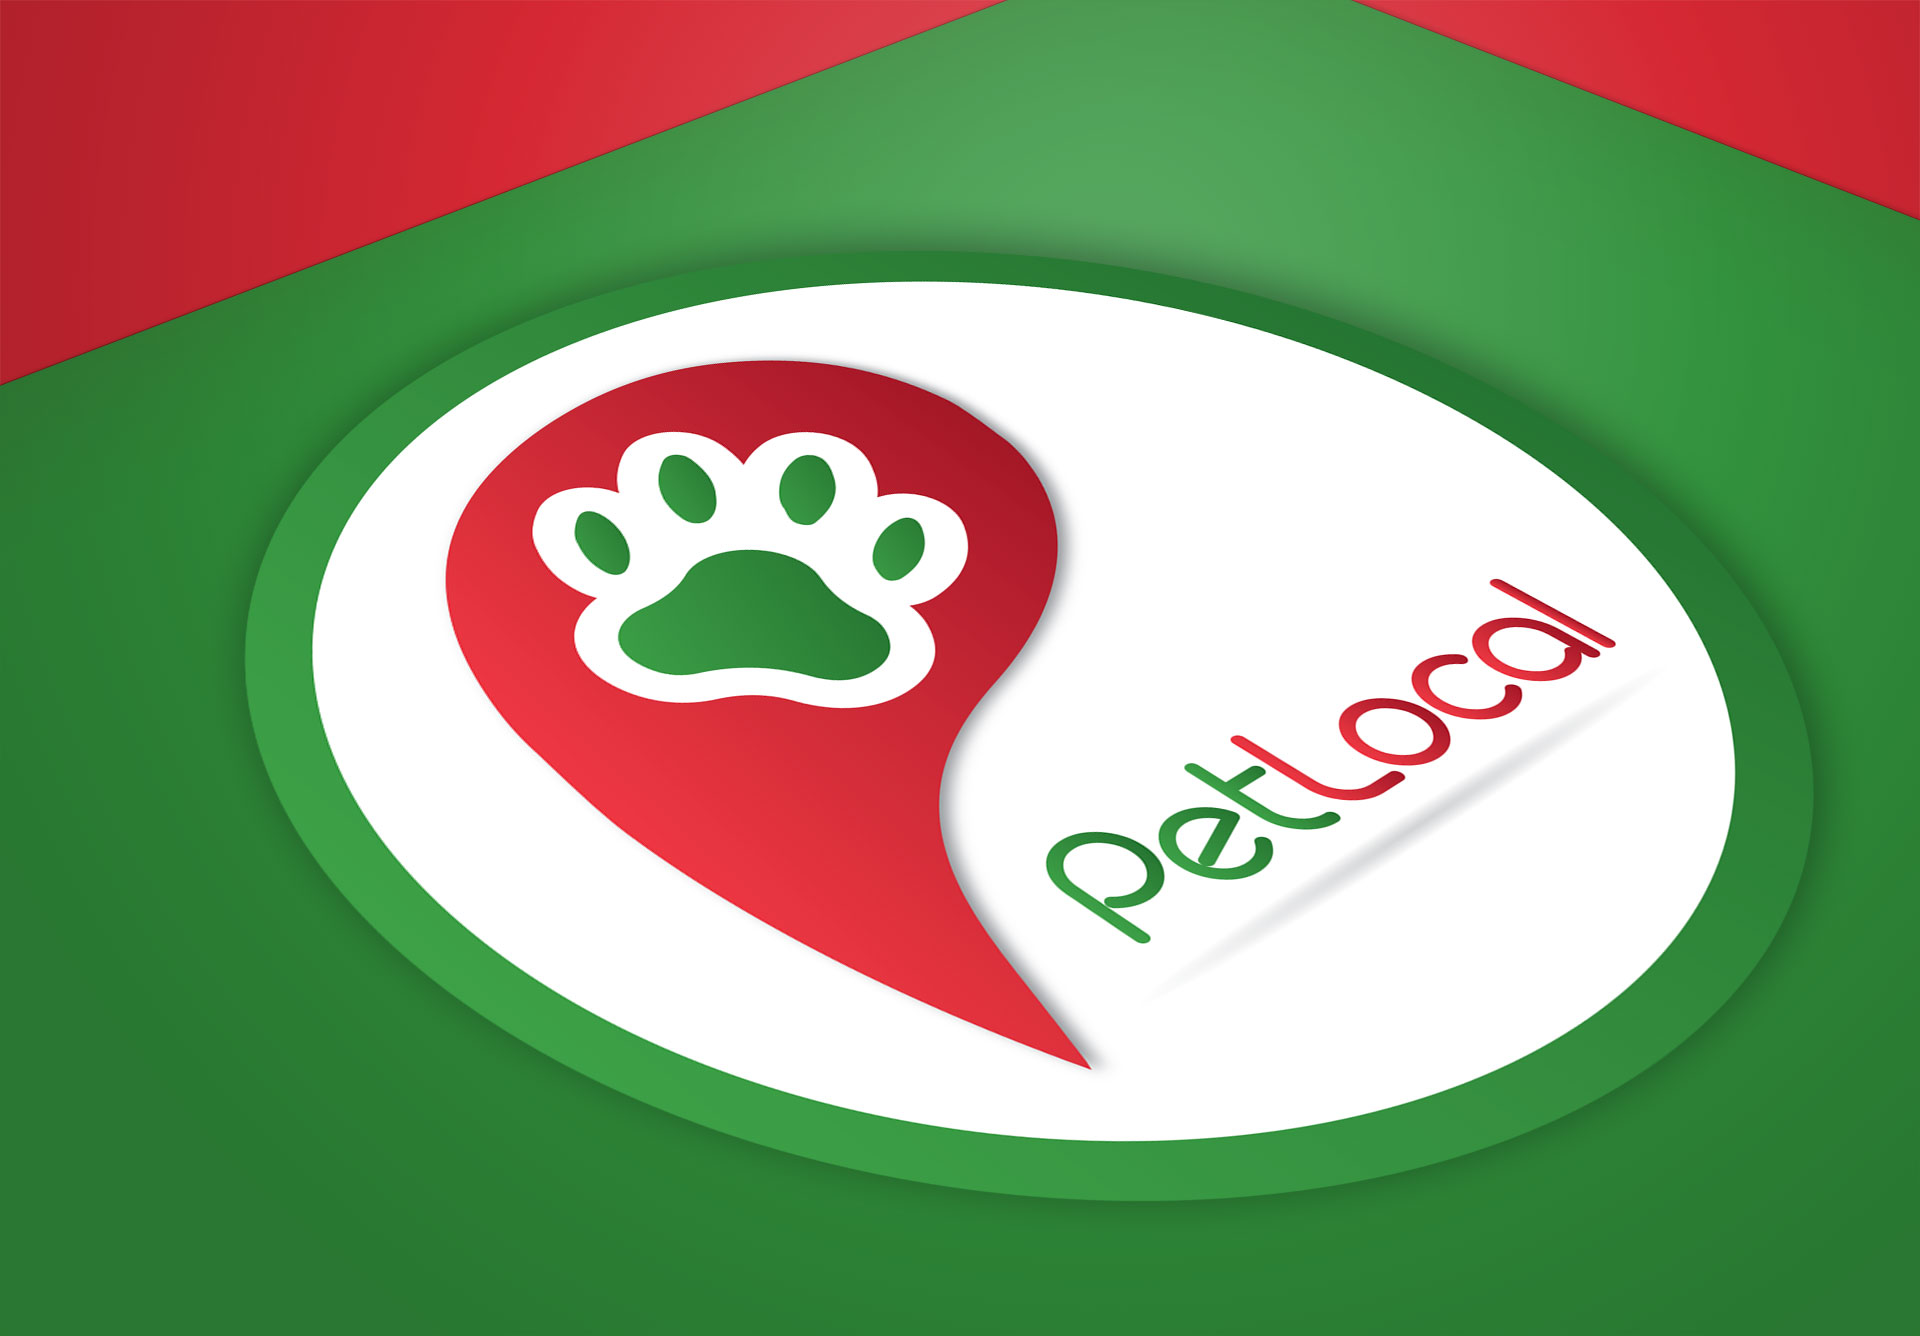 grafica-logo-ticino-pet-local-manthea